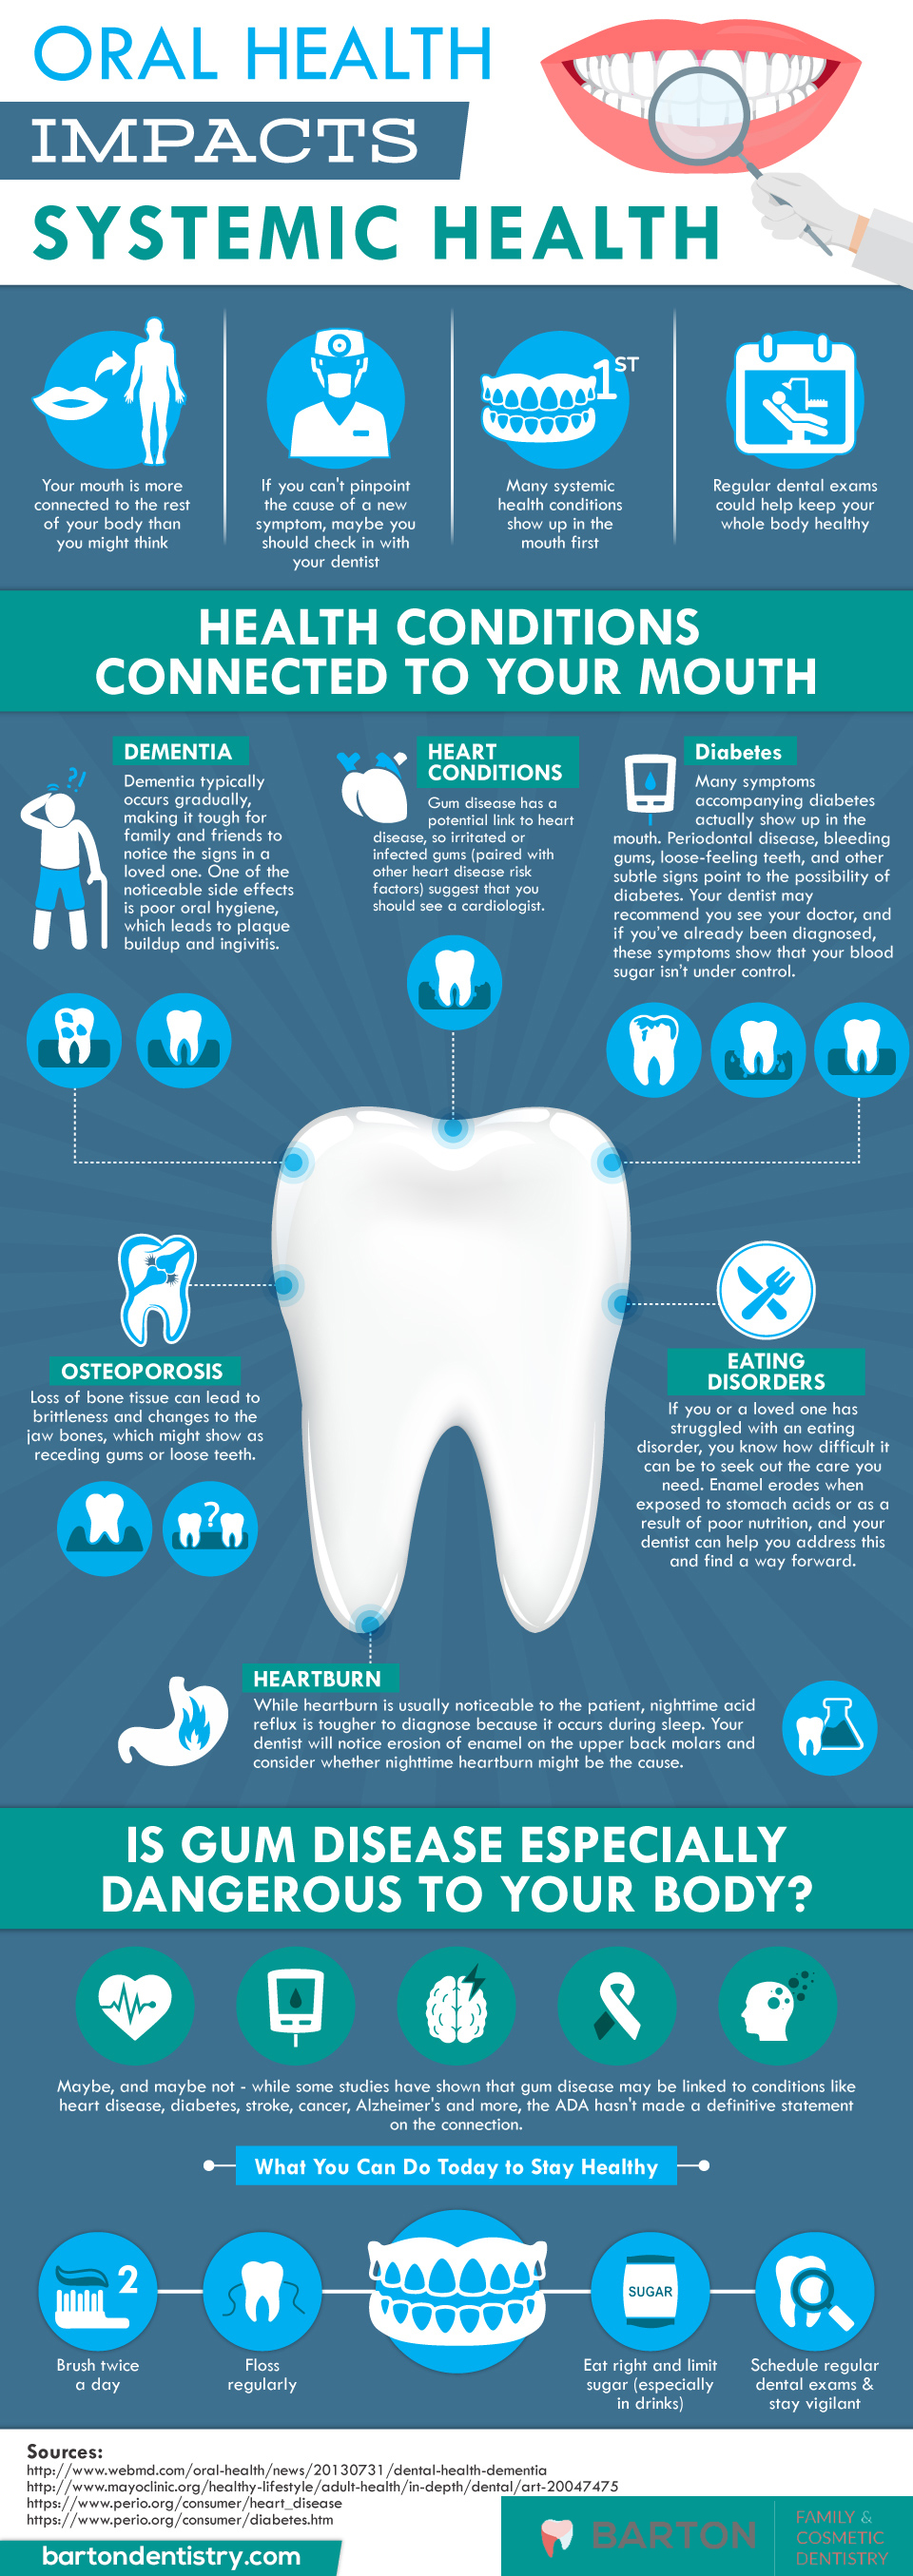 infographic about how oral health impacts systemic health